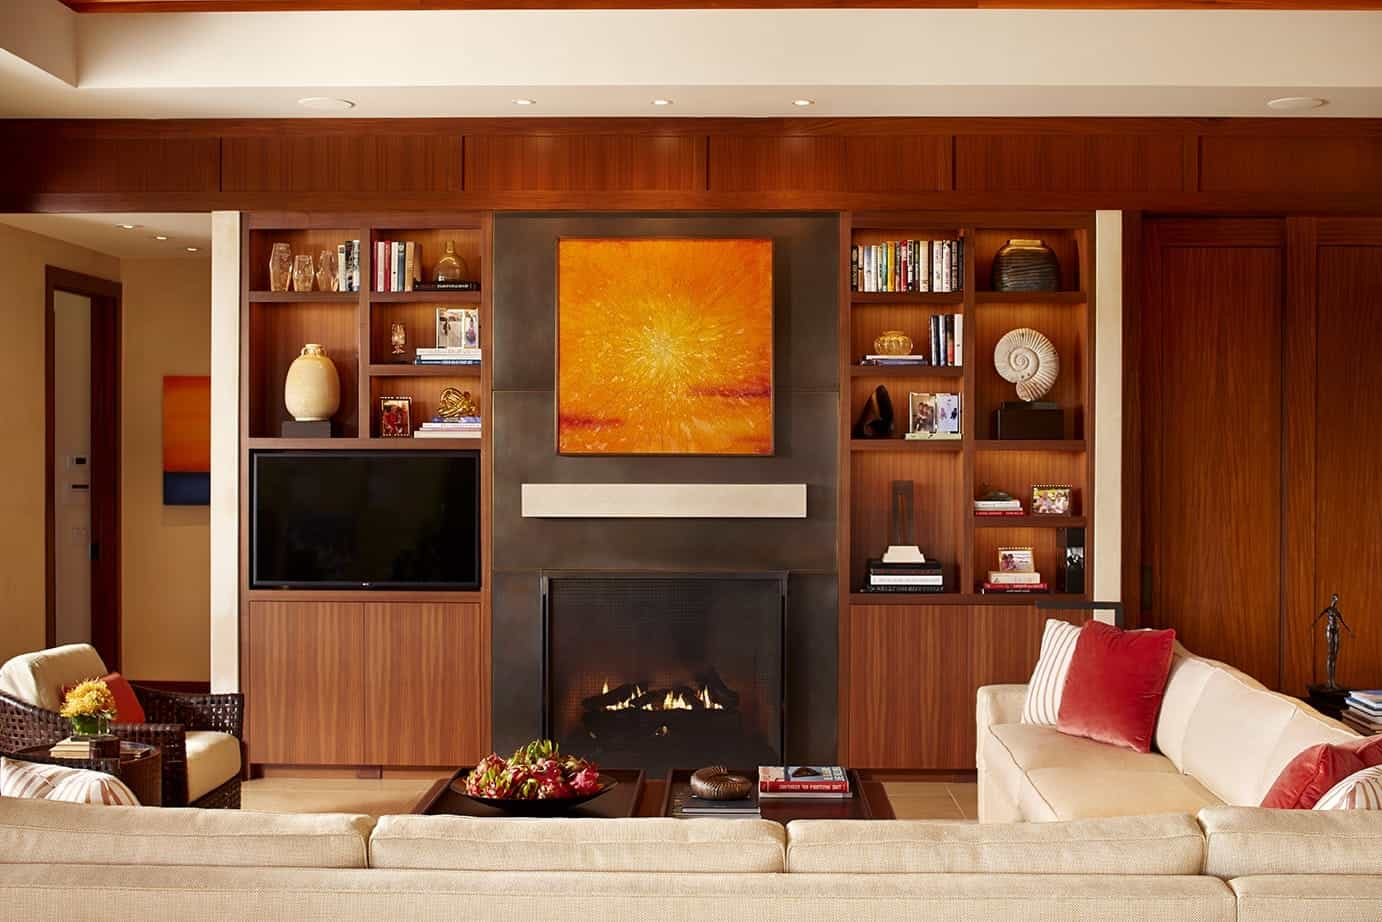 Fireplace And Warm Wood Bookshelves For Luxury Living Room  (Image 12 of 29)